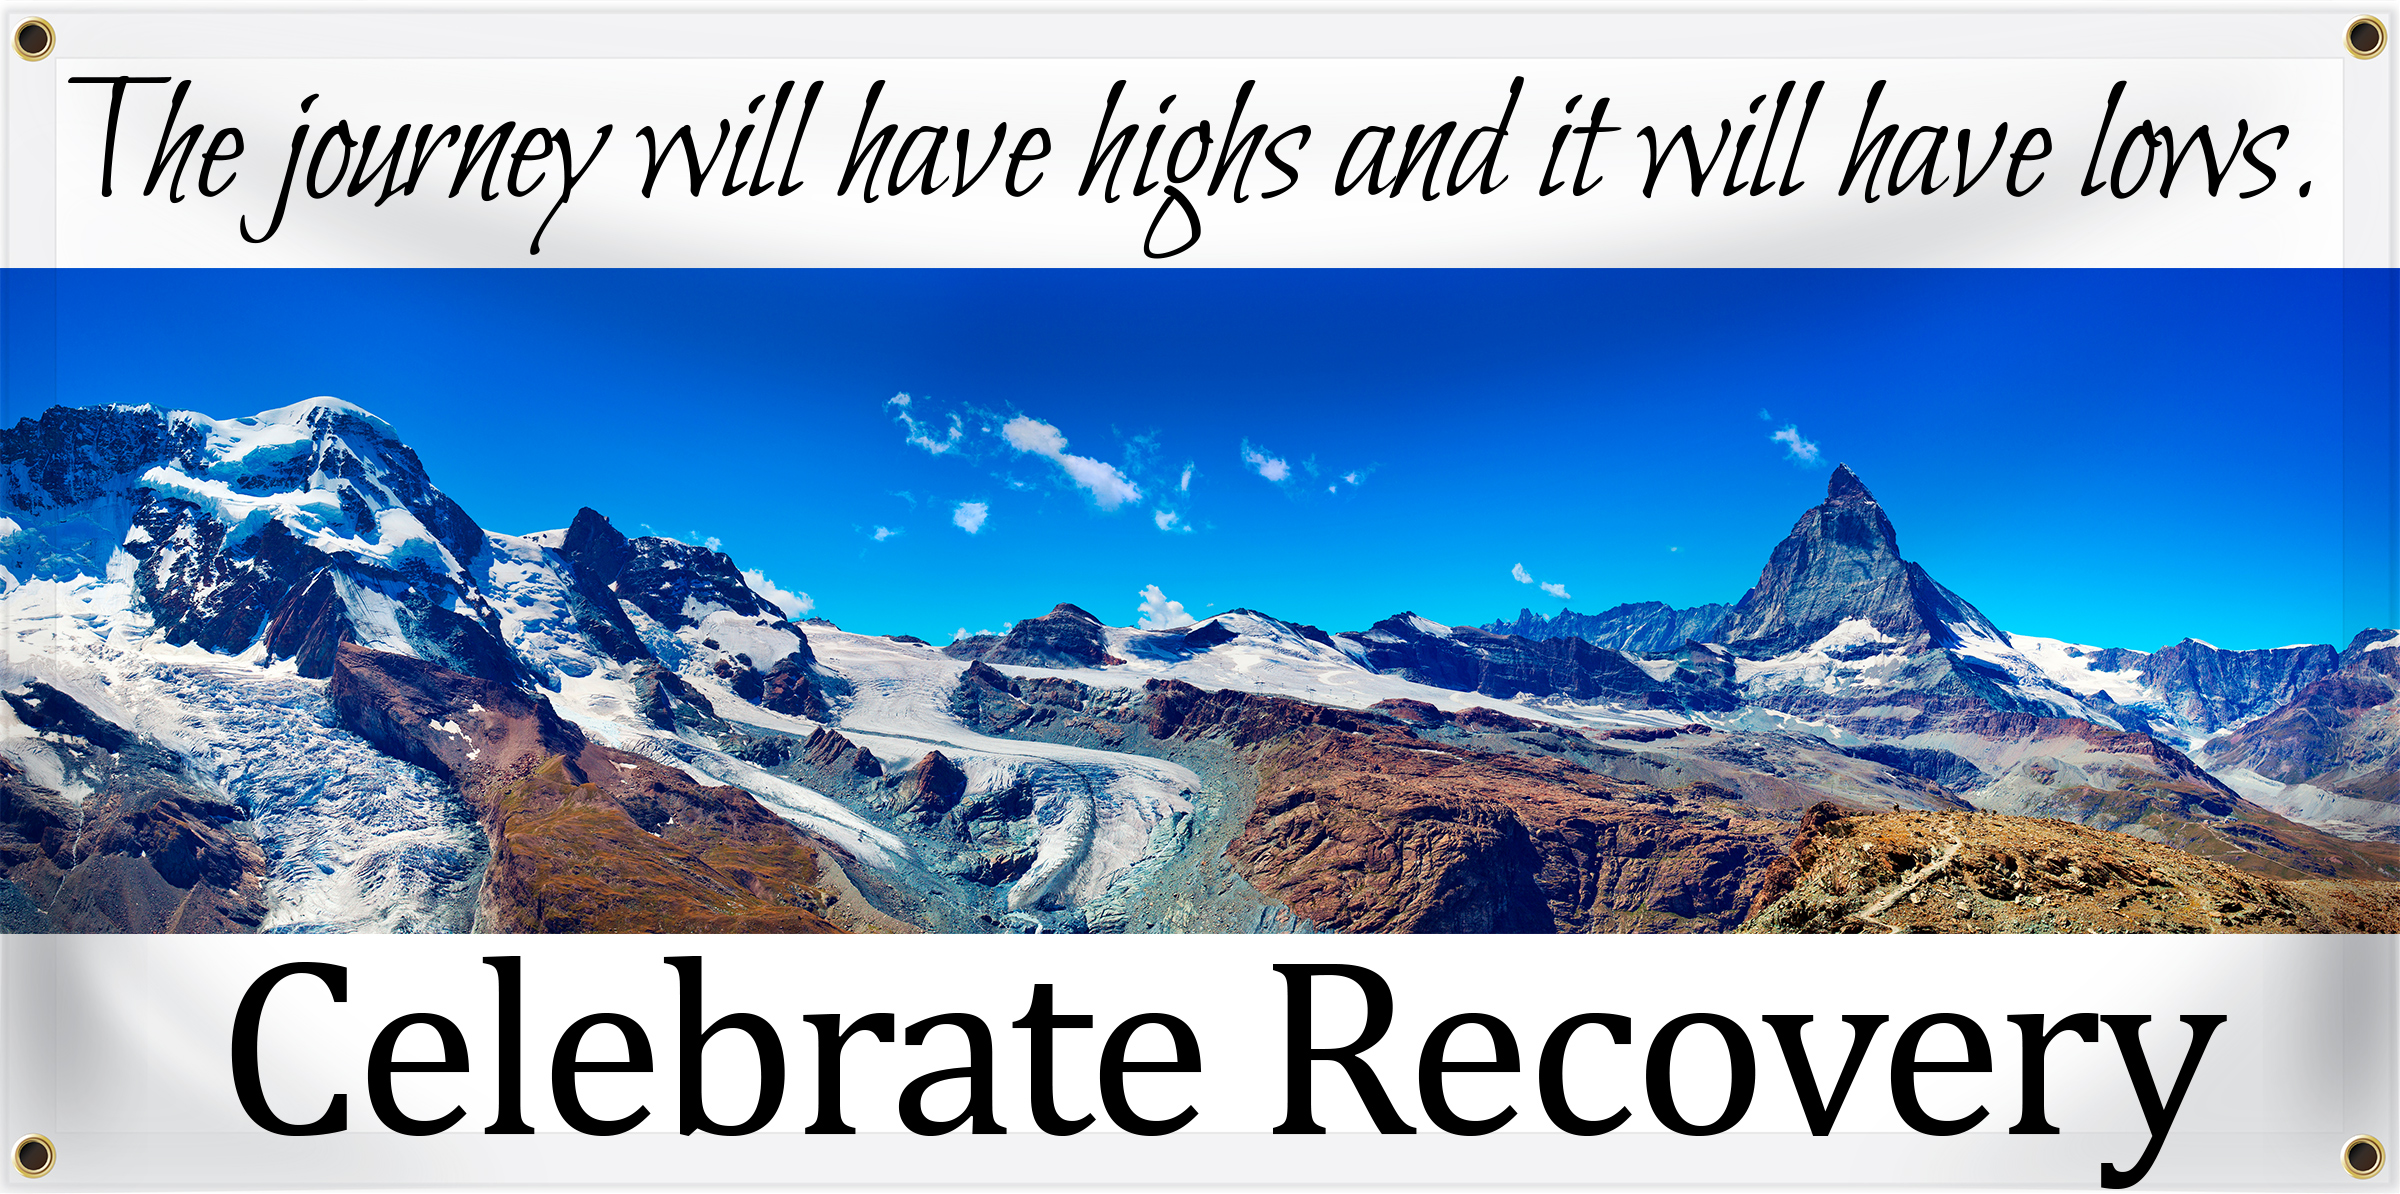 Celebrate Recovery Banner Ideas | LawnSigns.com